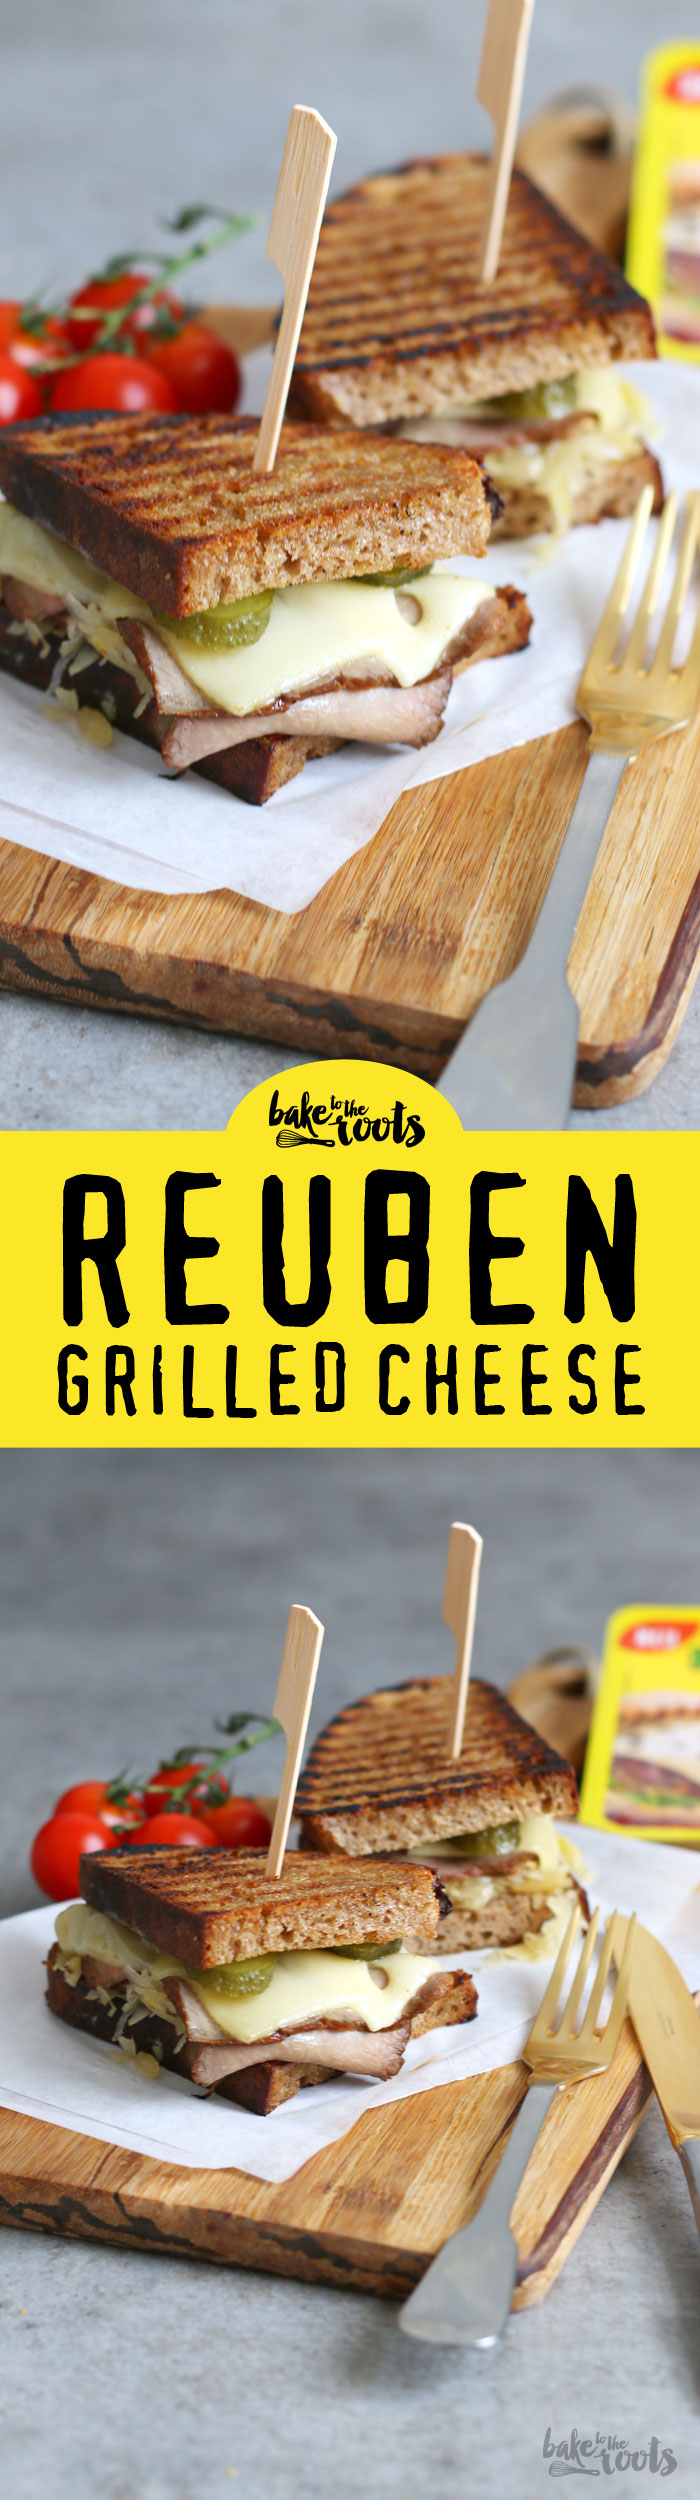 Delicious Reuben Grilled Cheese | Bake to the roots